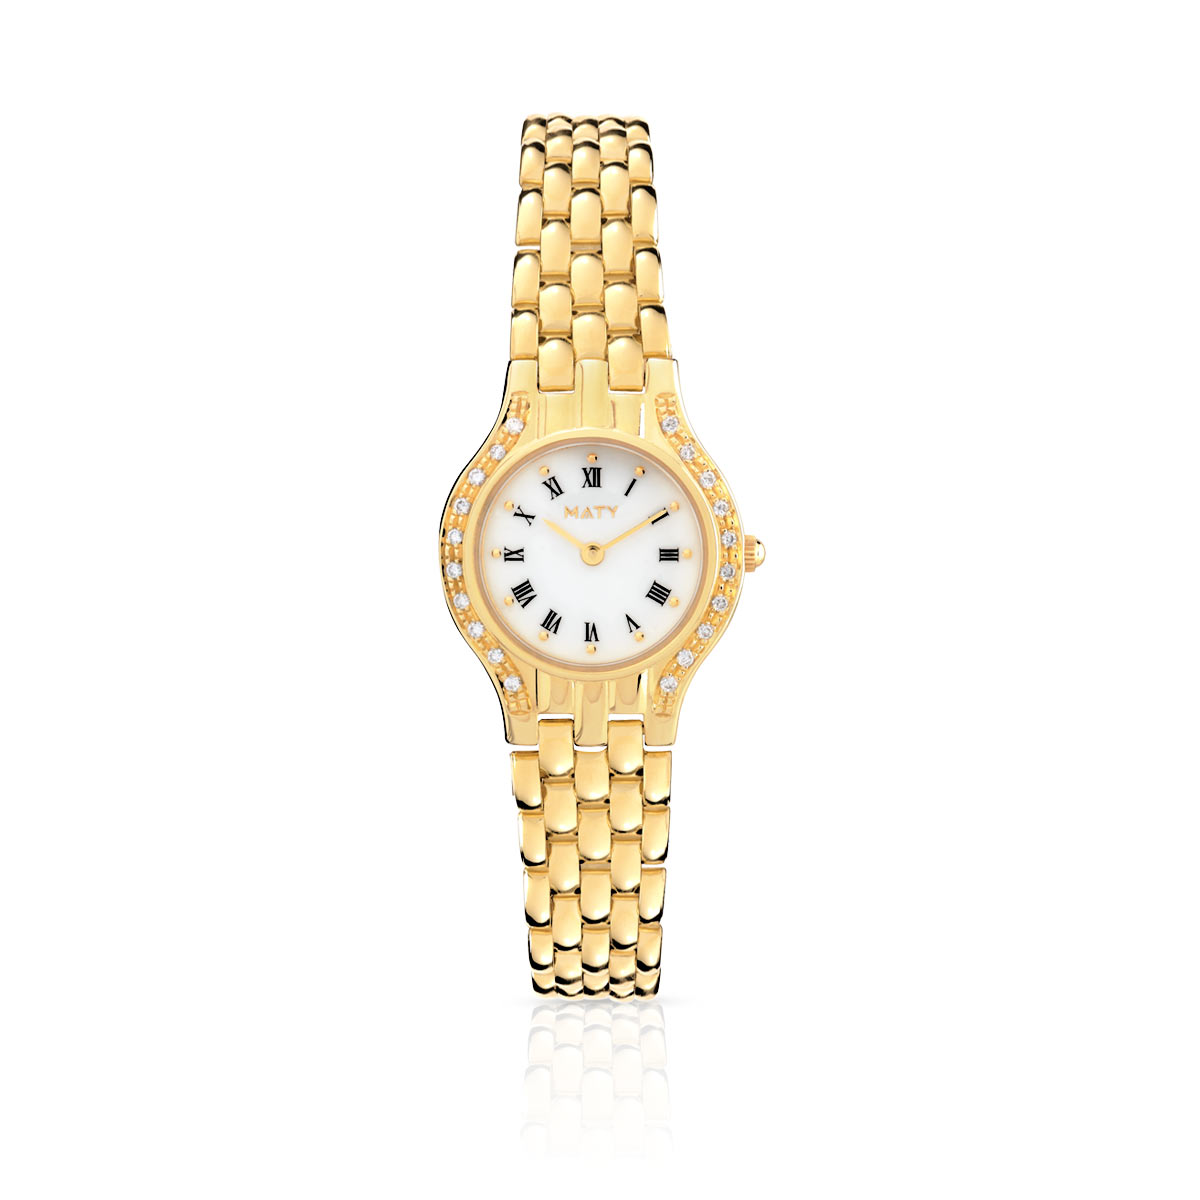 Montre femme or 750 jaune diamant bracelet or 750 - vue V1